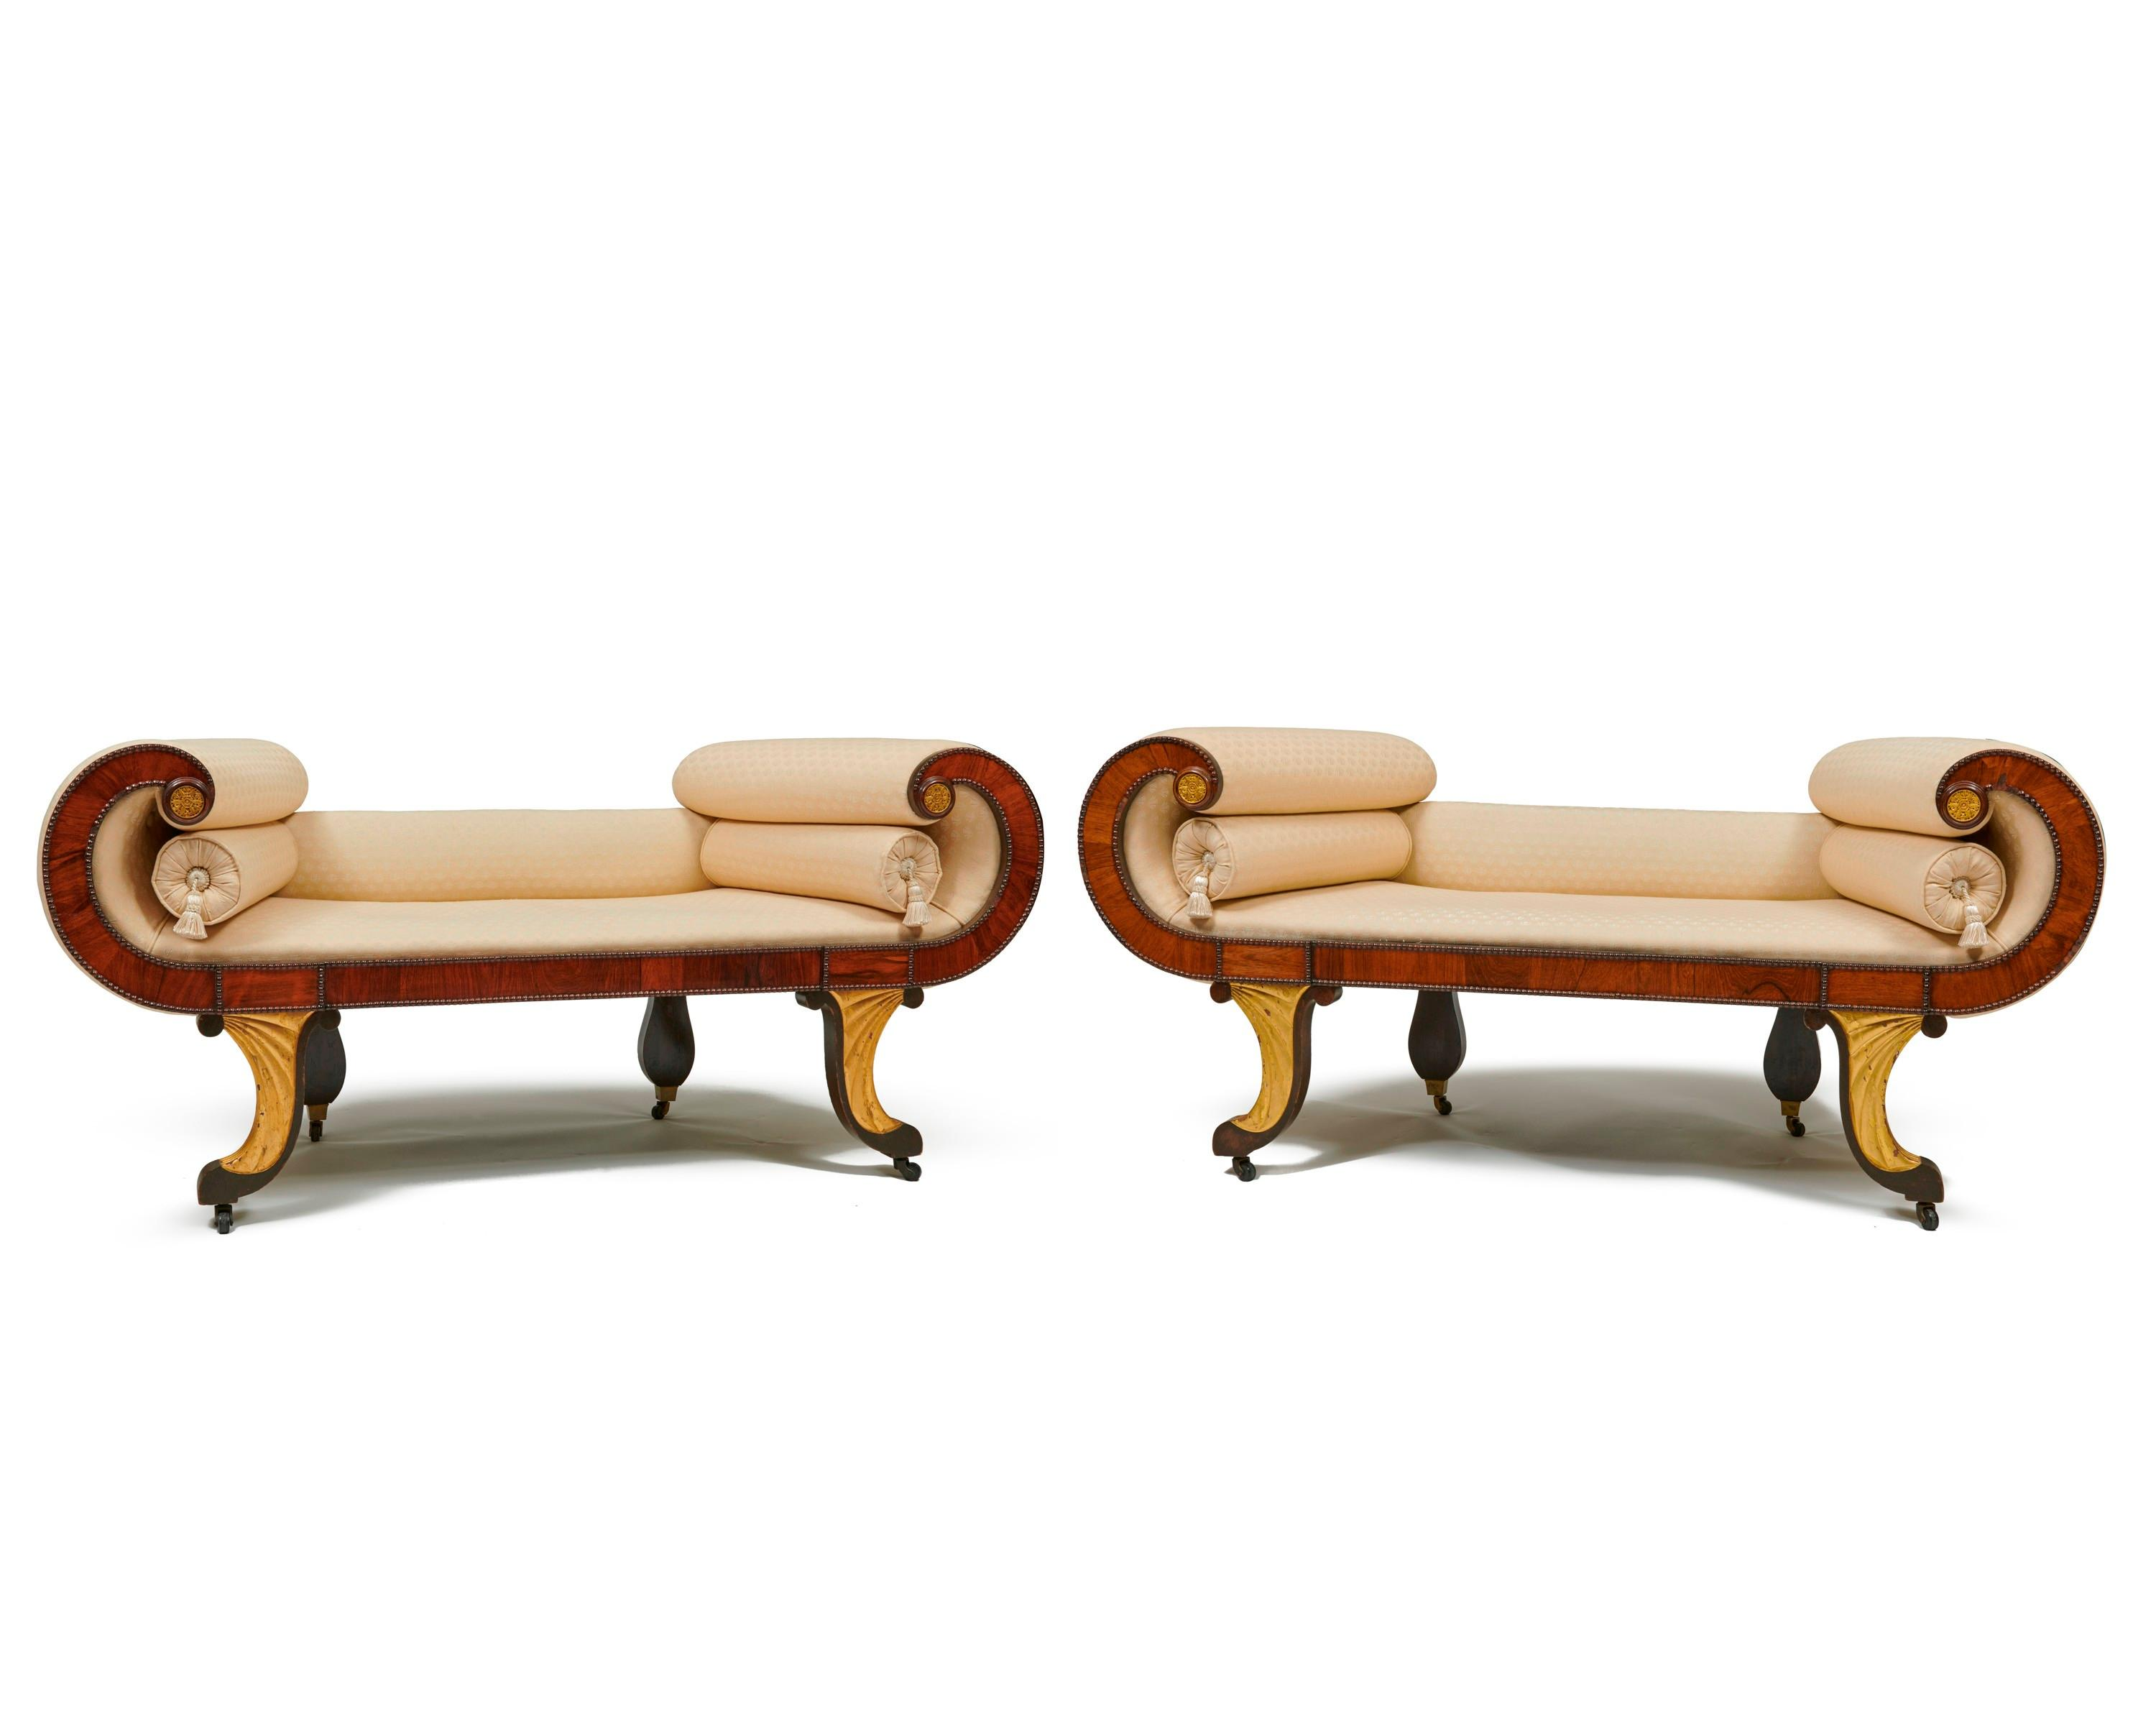 Pair of Classical Carved and Gilt Wood Conversation Benches, Roxbury, Massachusetts, ca. 1830